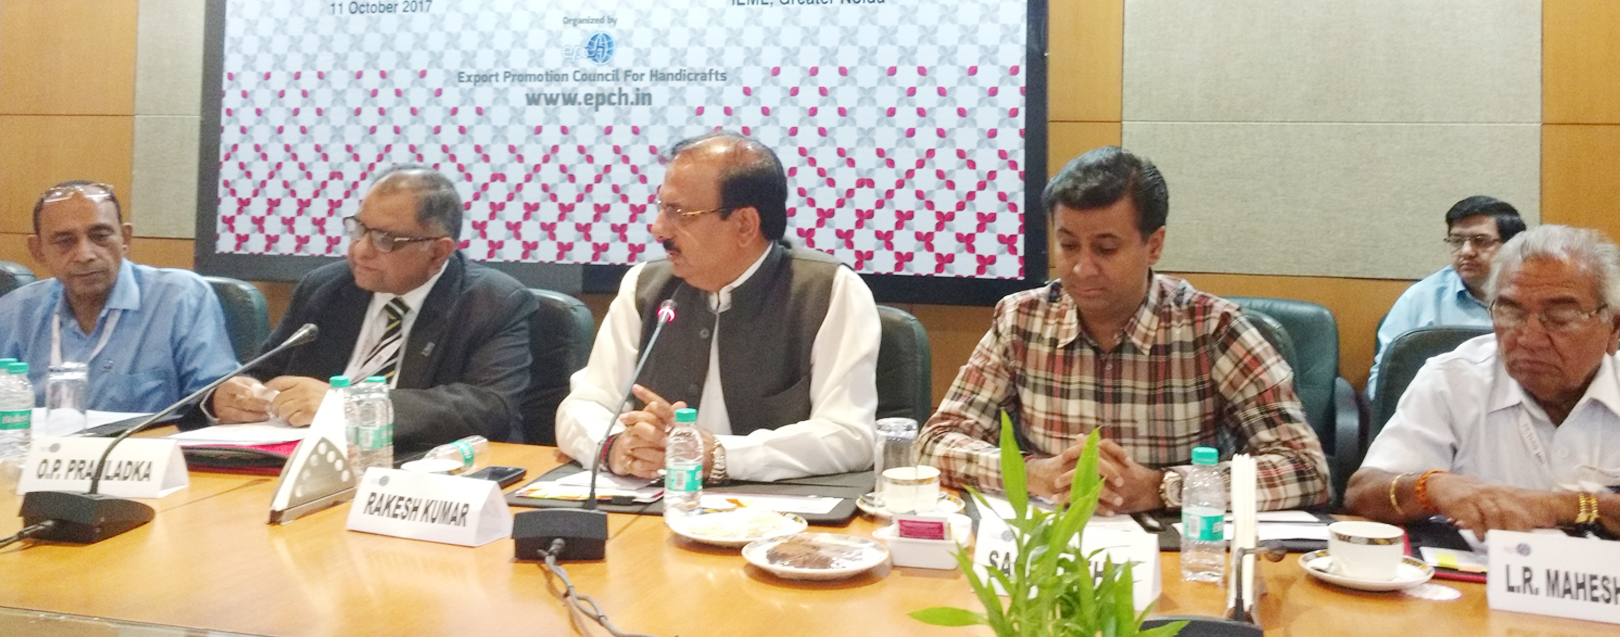 Handicrafts exports decline in first half of current fiscal: EPCH